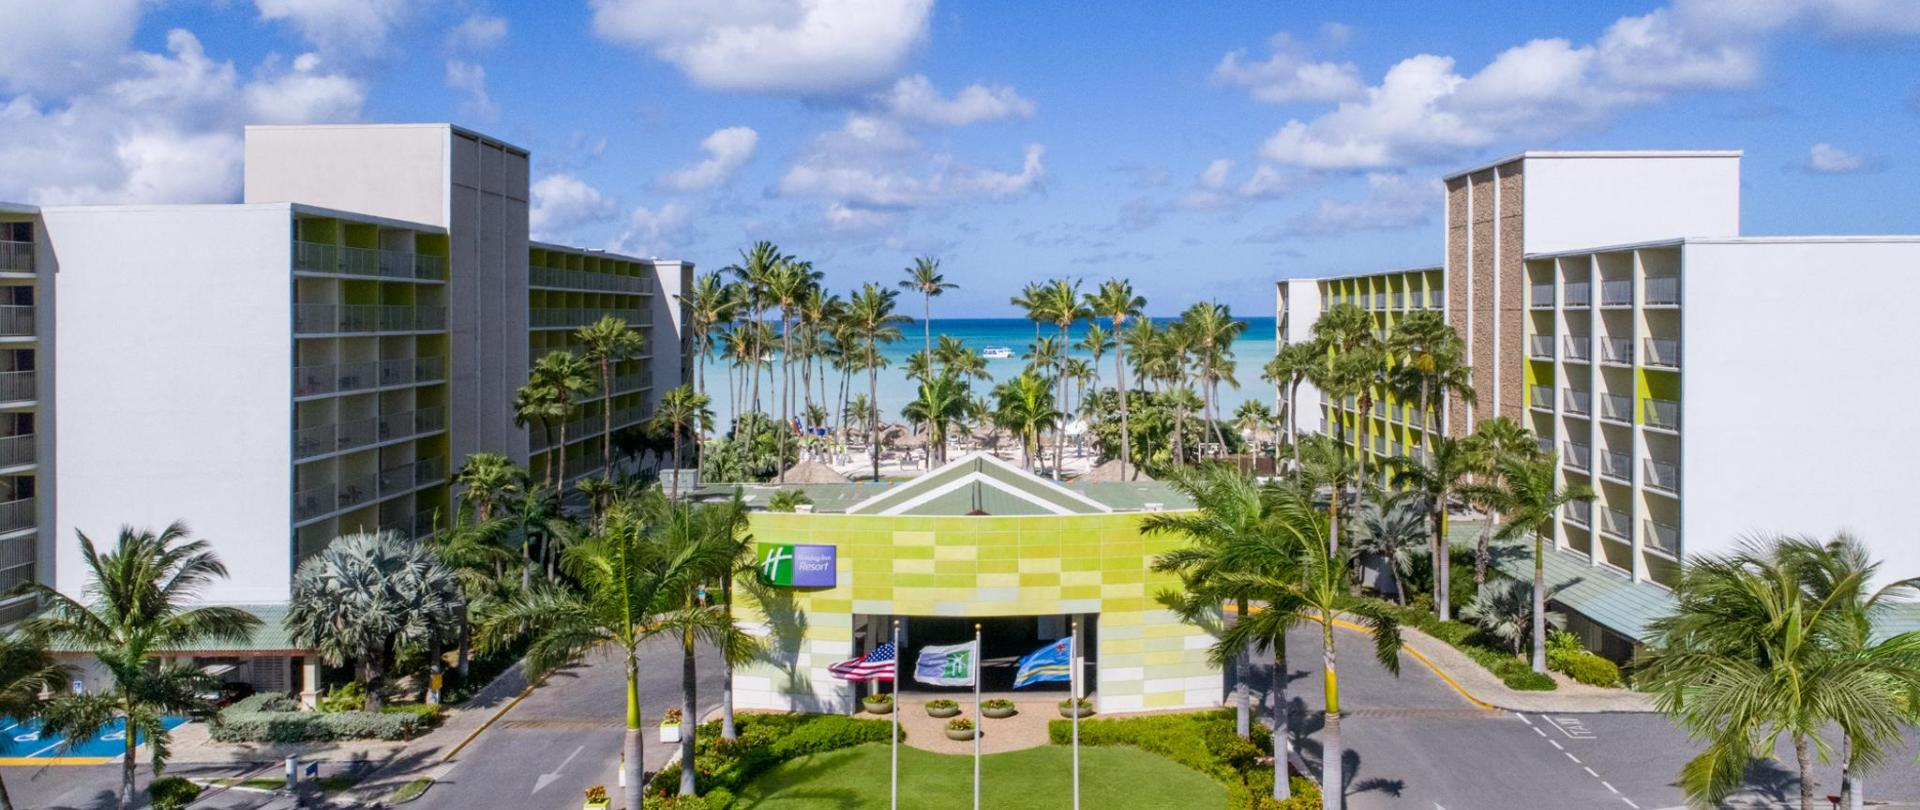 Aruba-Holiday-Inn-Drone-Entrance.jpg